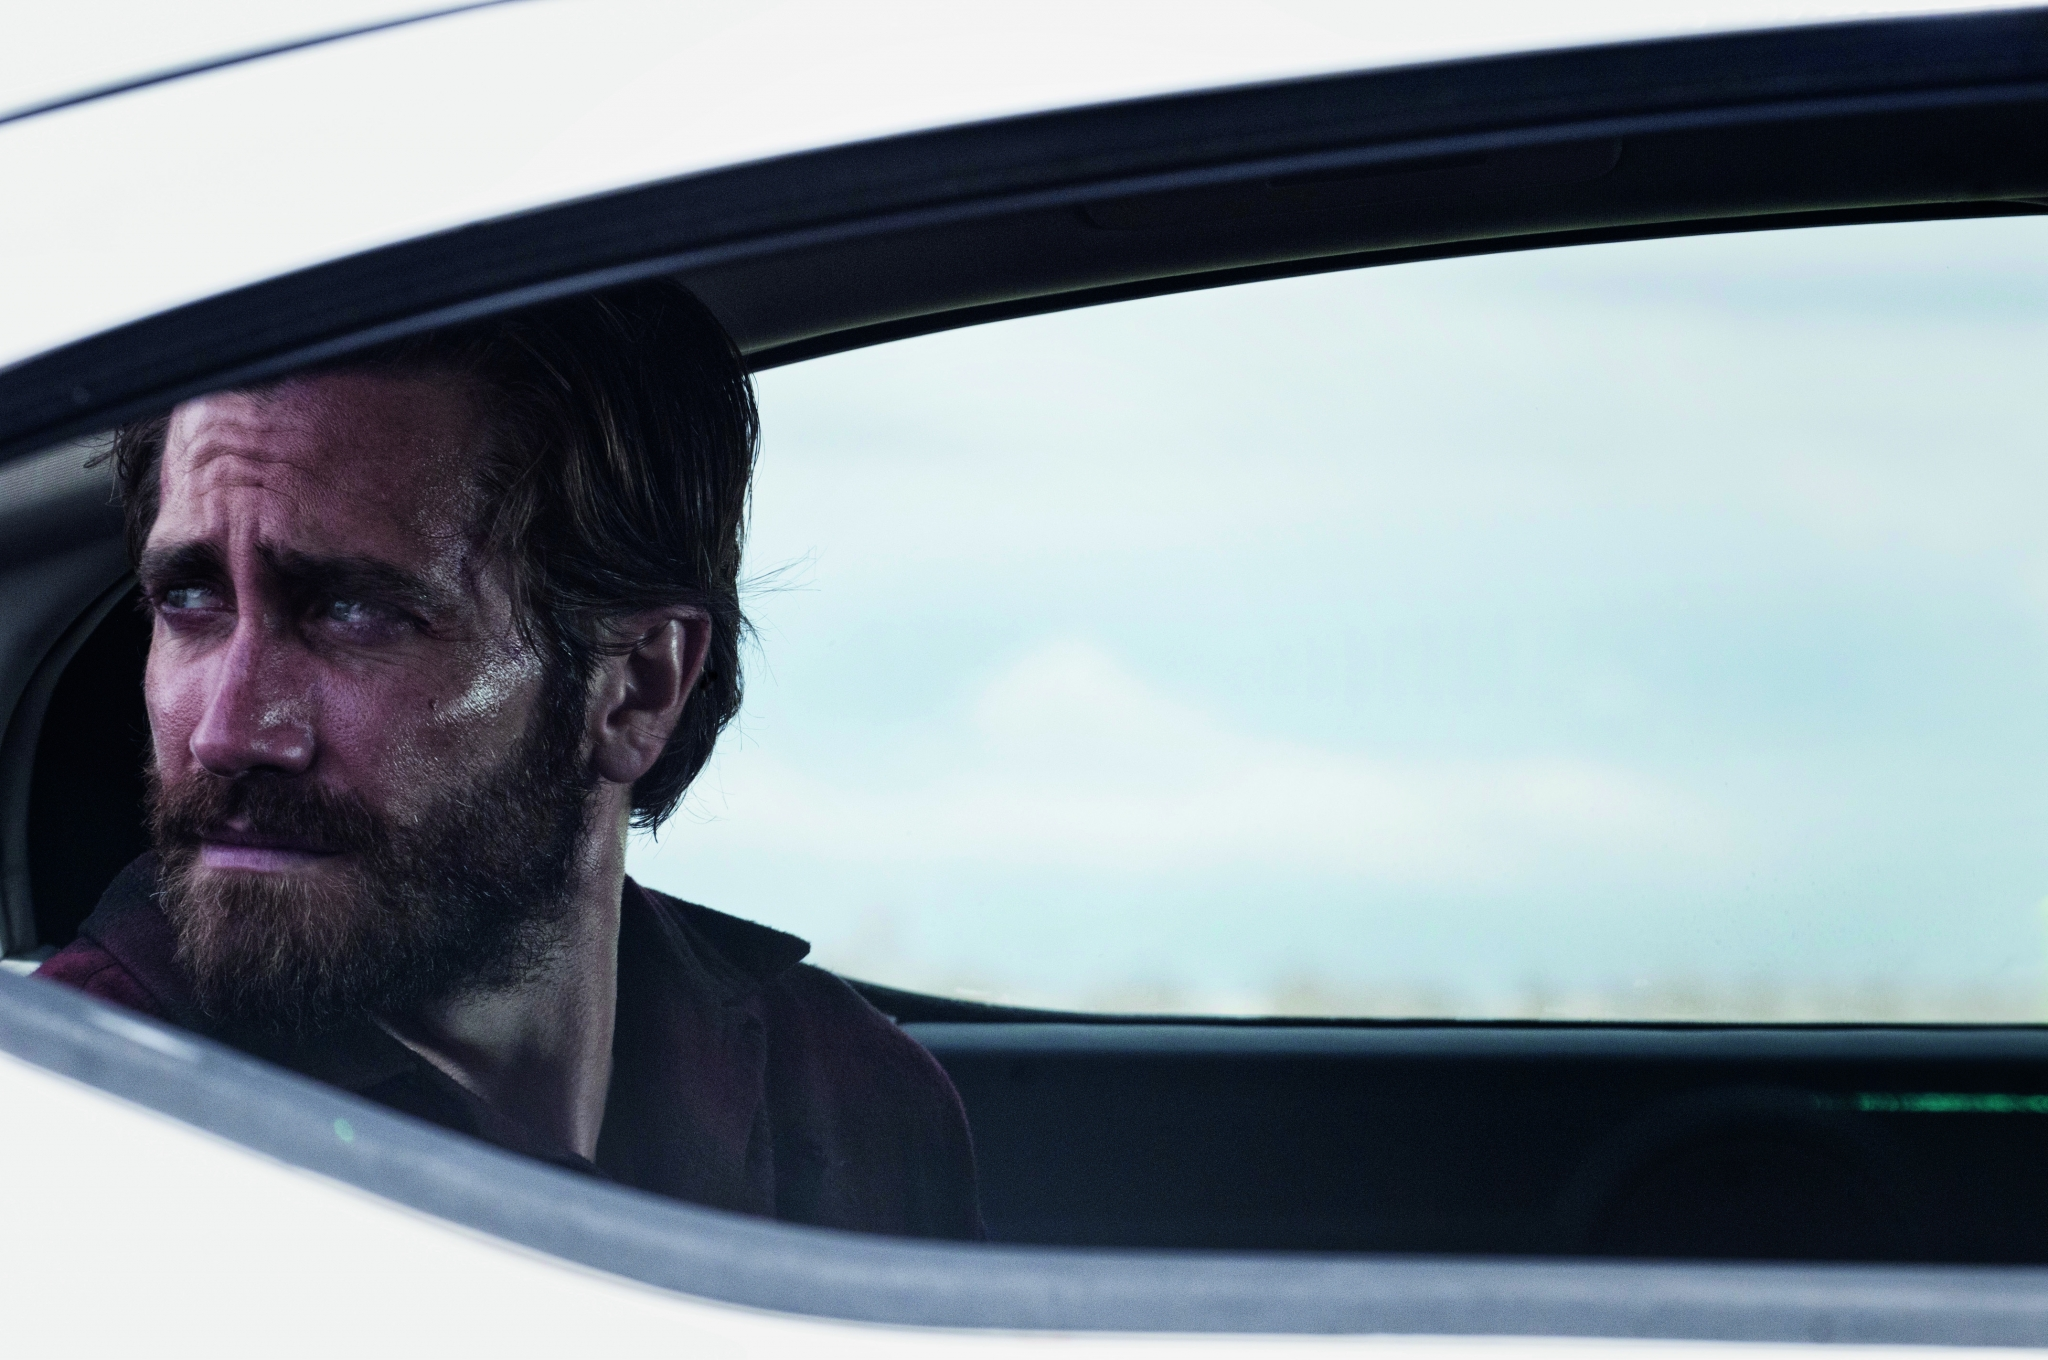 _DSC5202_R Academy Award nominee Jake Gyllenhaal portrays Tony Hastings in writer/director Tom Ford's romantic thriller NOCTURNAL ANIMALS, a Universal Pictures International release. Credit: Merrick Morton/Universal Pictures International